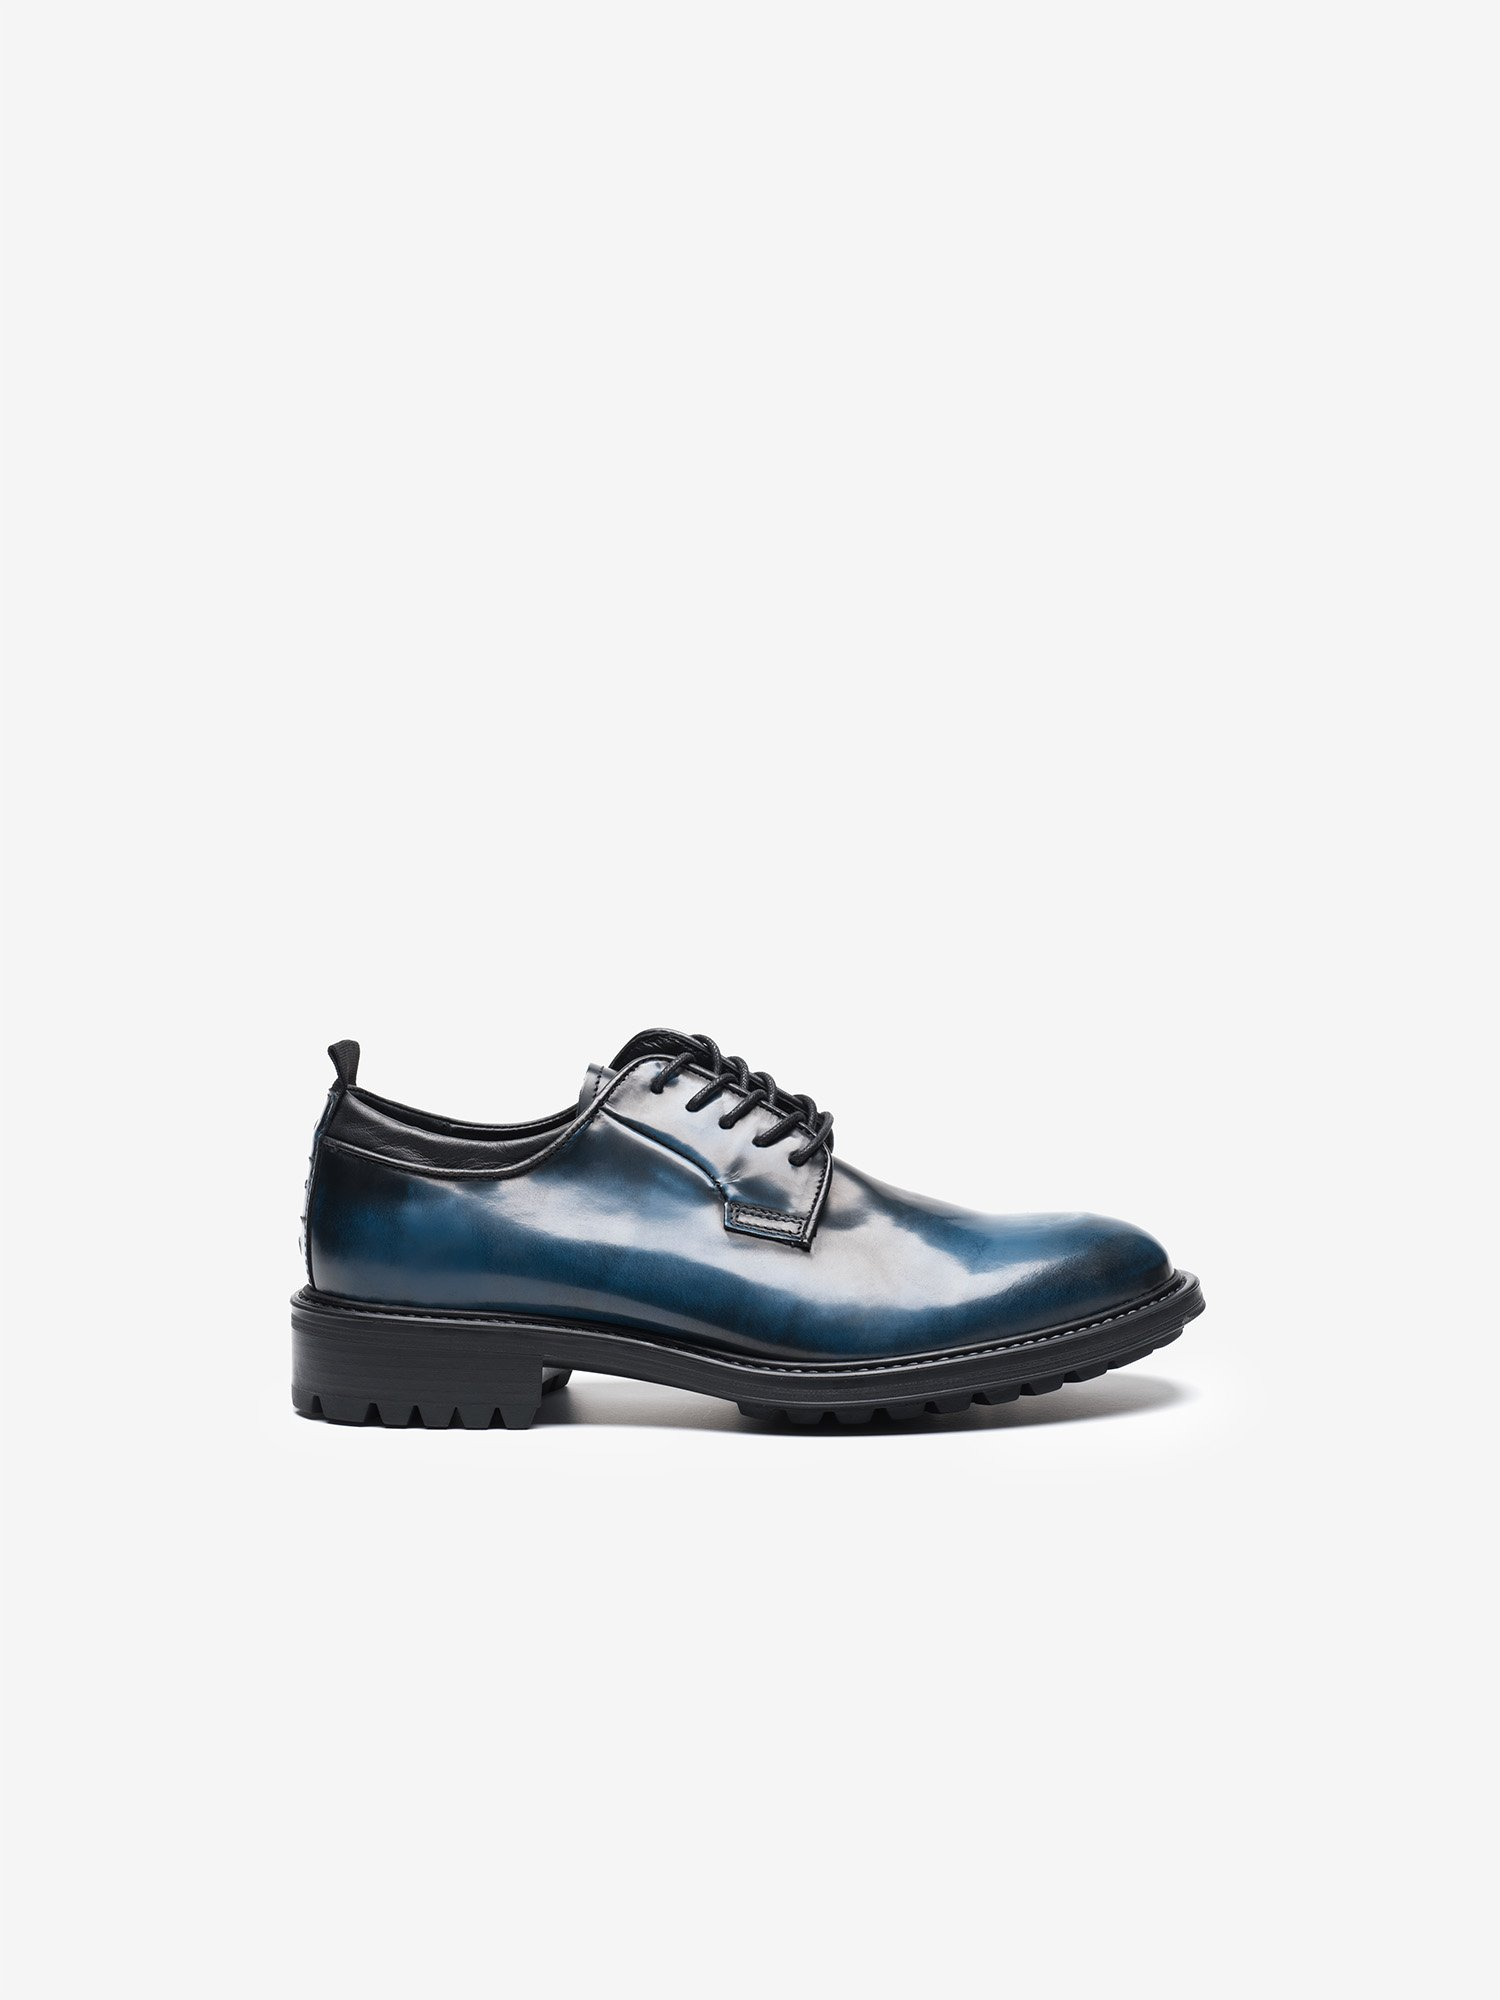 Blauer - LACE UP SHINY DERBY SHOES - Infinity Blue - Blauer